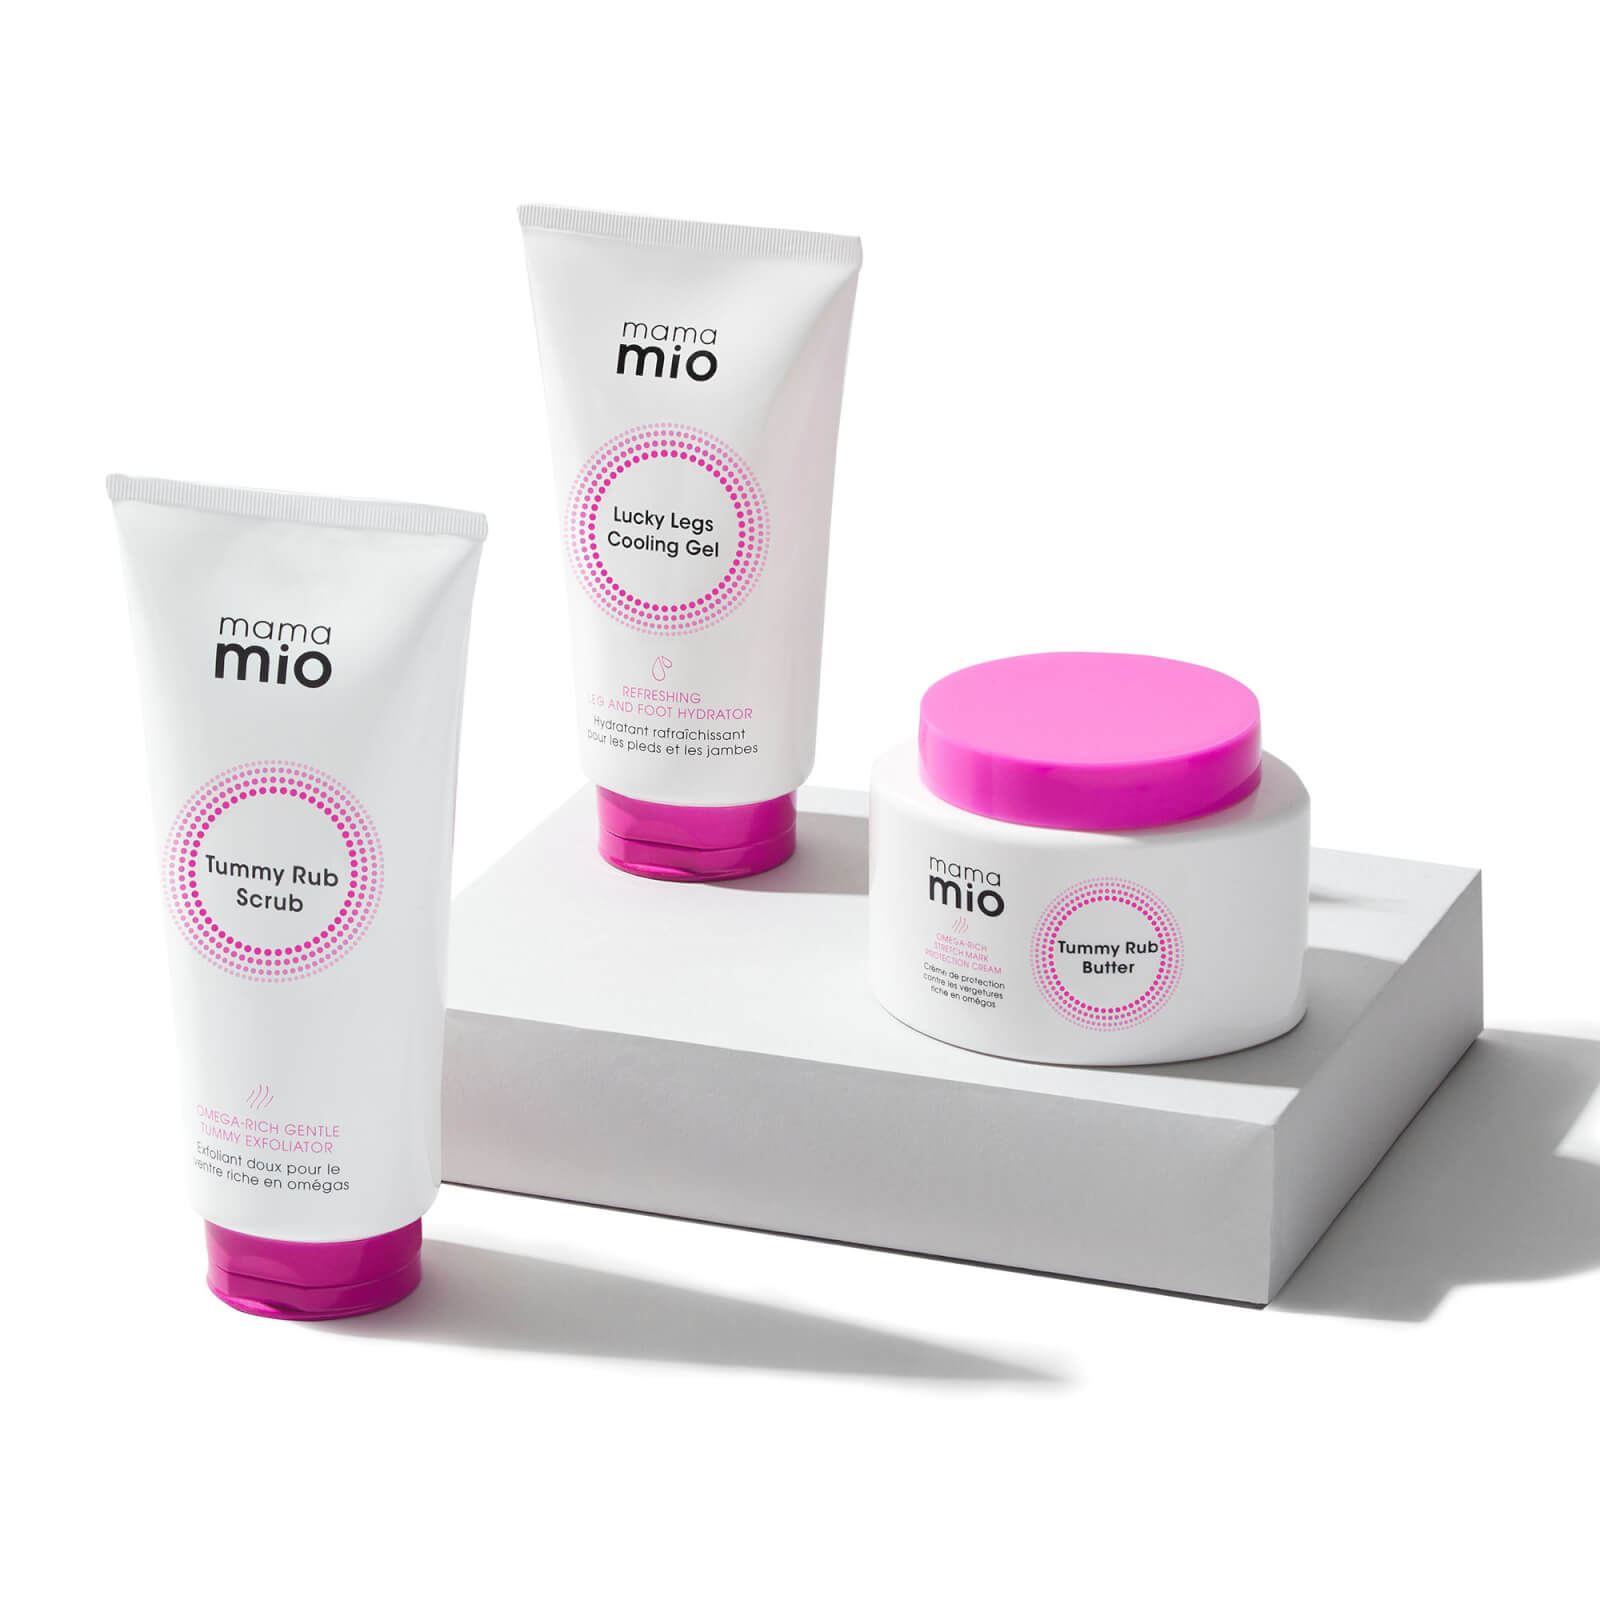 Mama Mio Trimester 2 Butter Bundle (Worth £62.00)